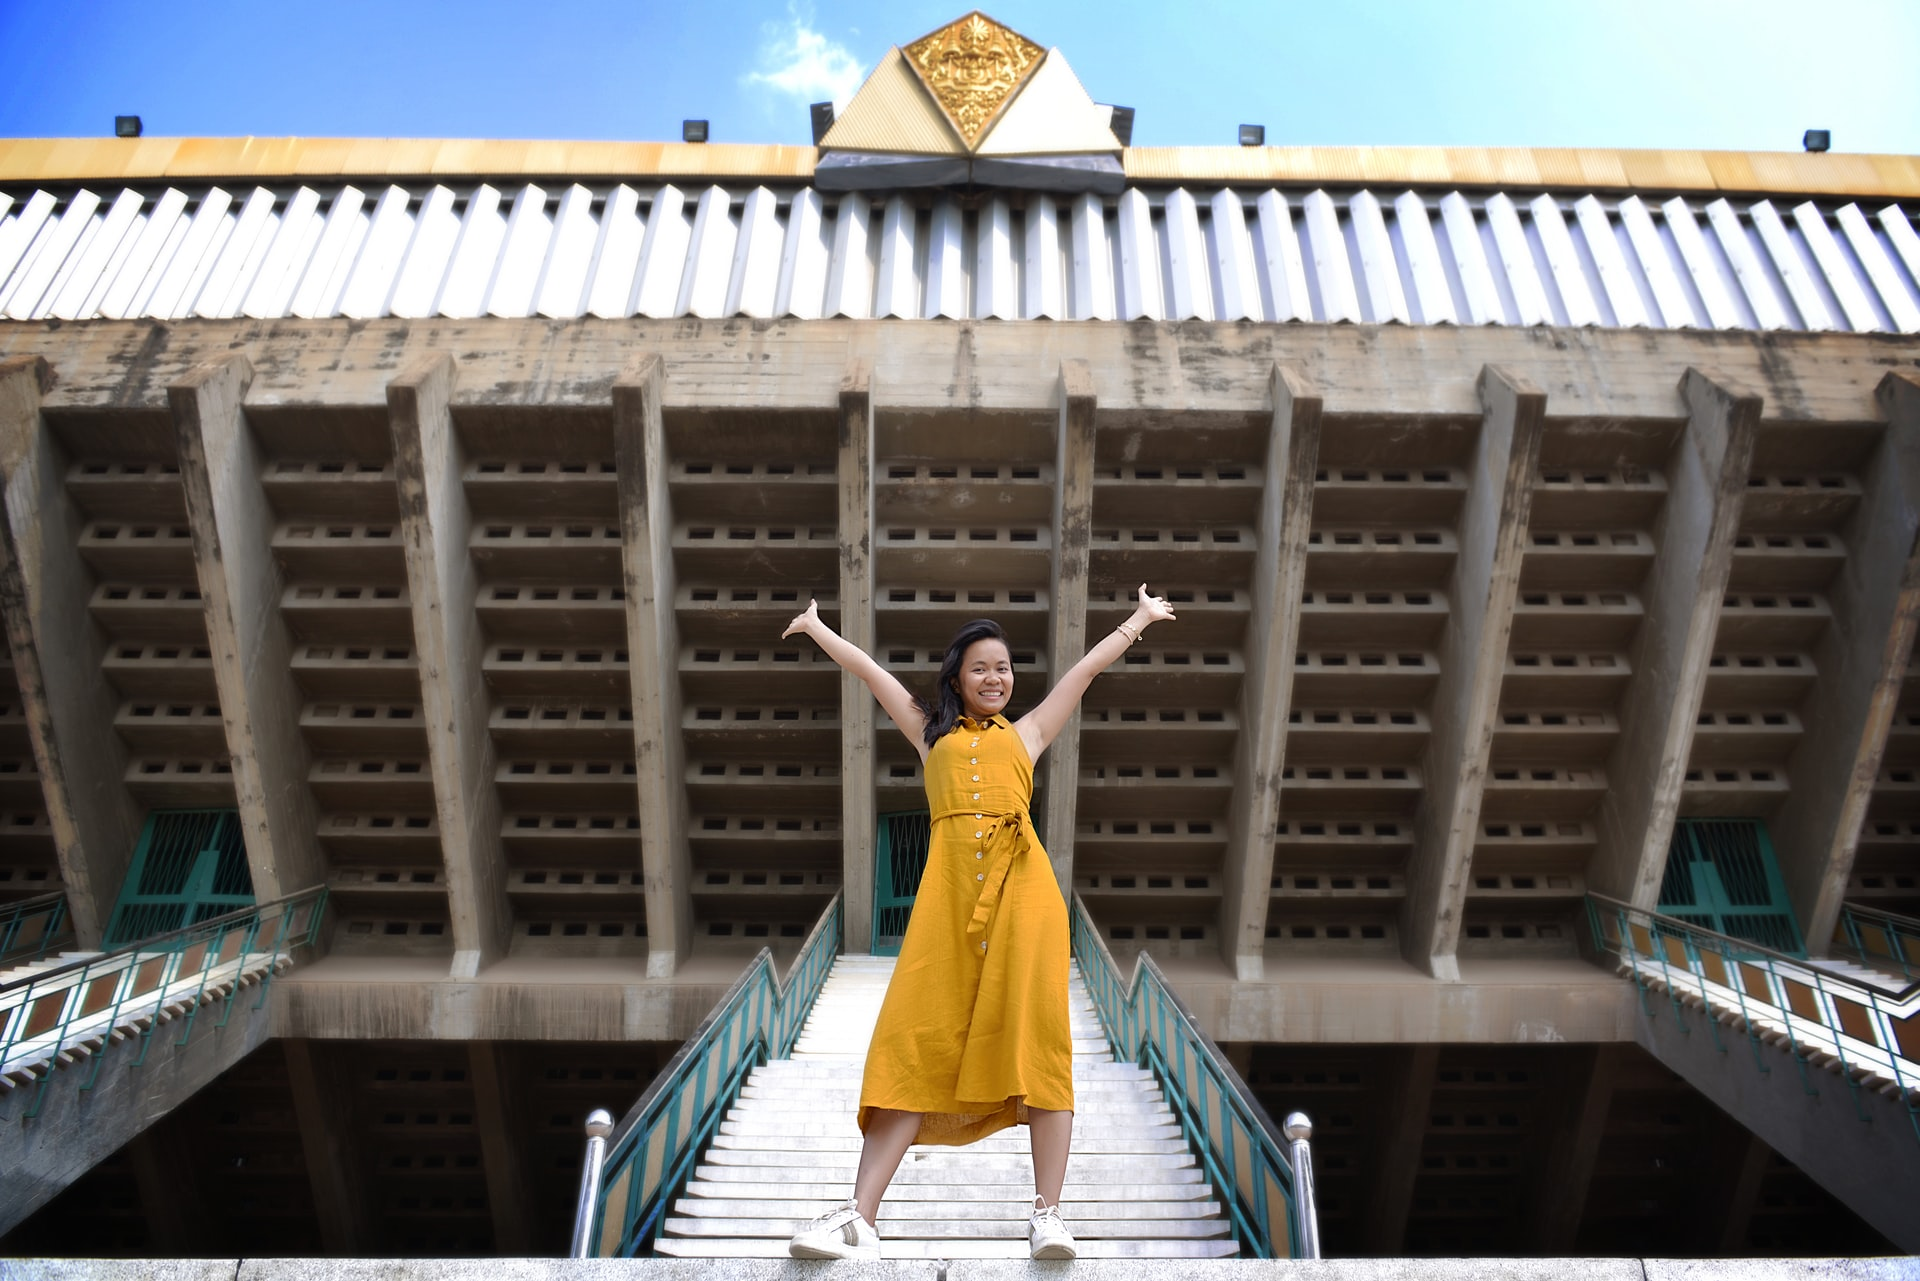 Girl in yellow dress standing on stairs with outstretched arms